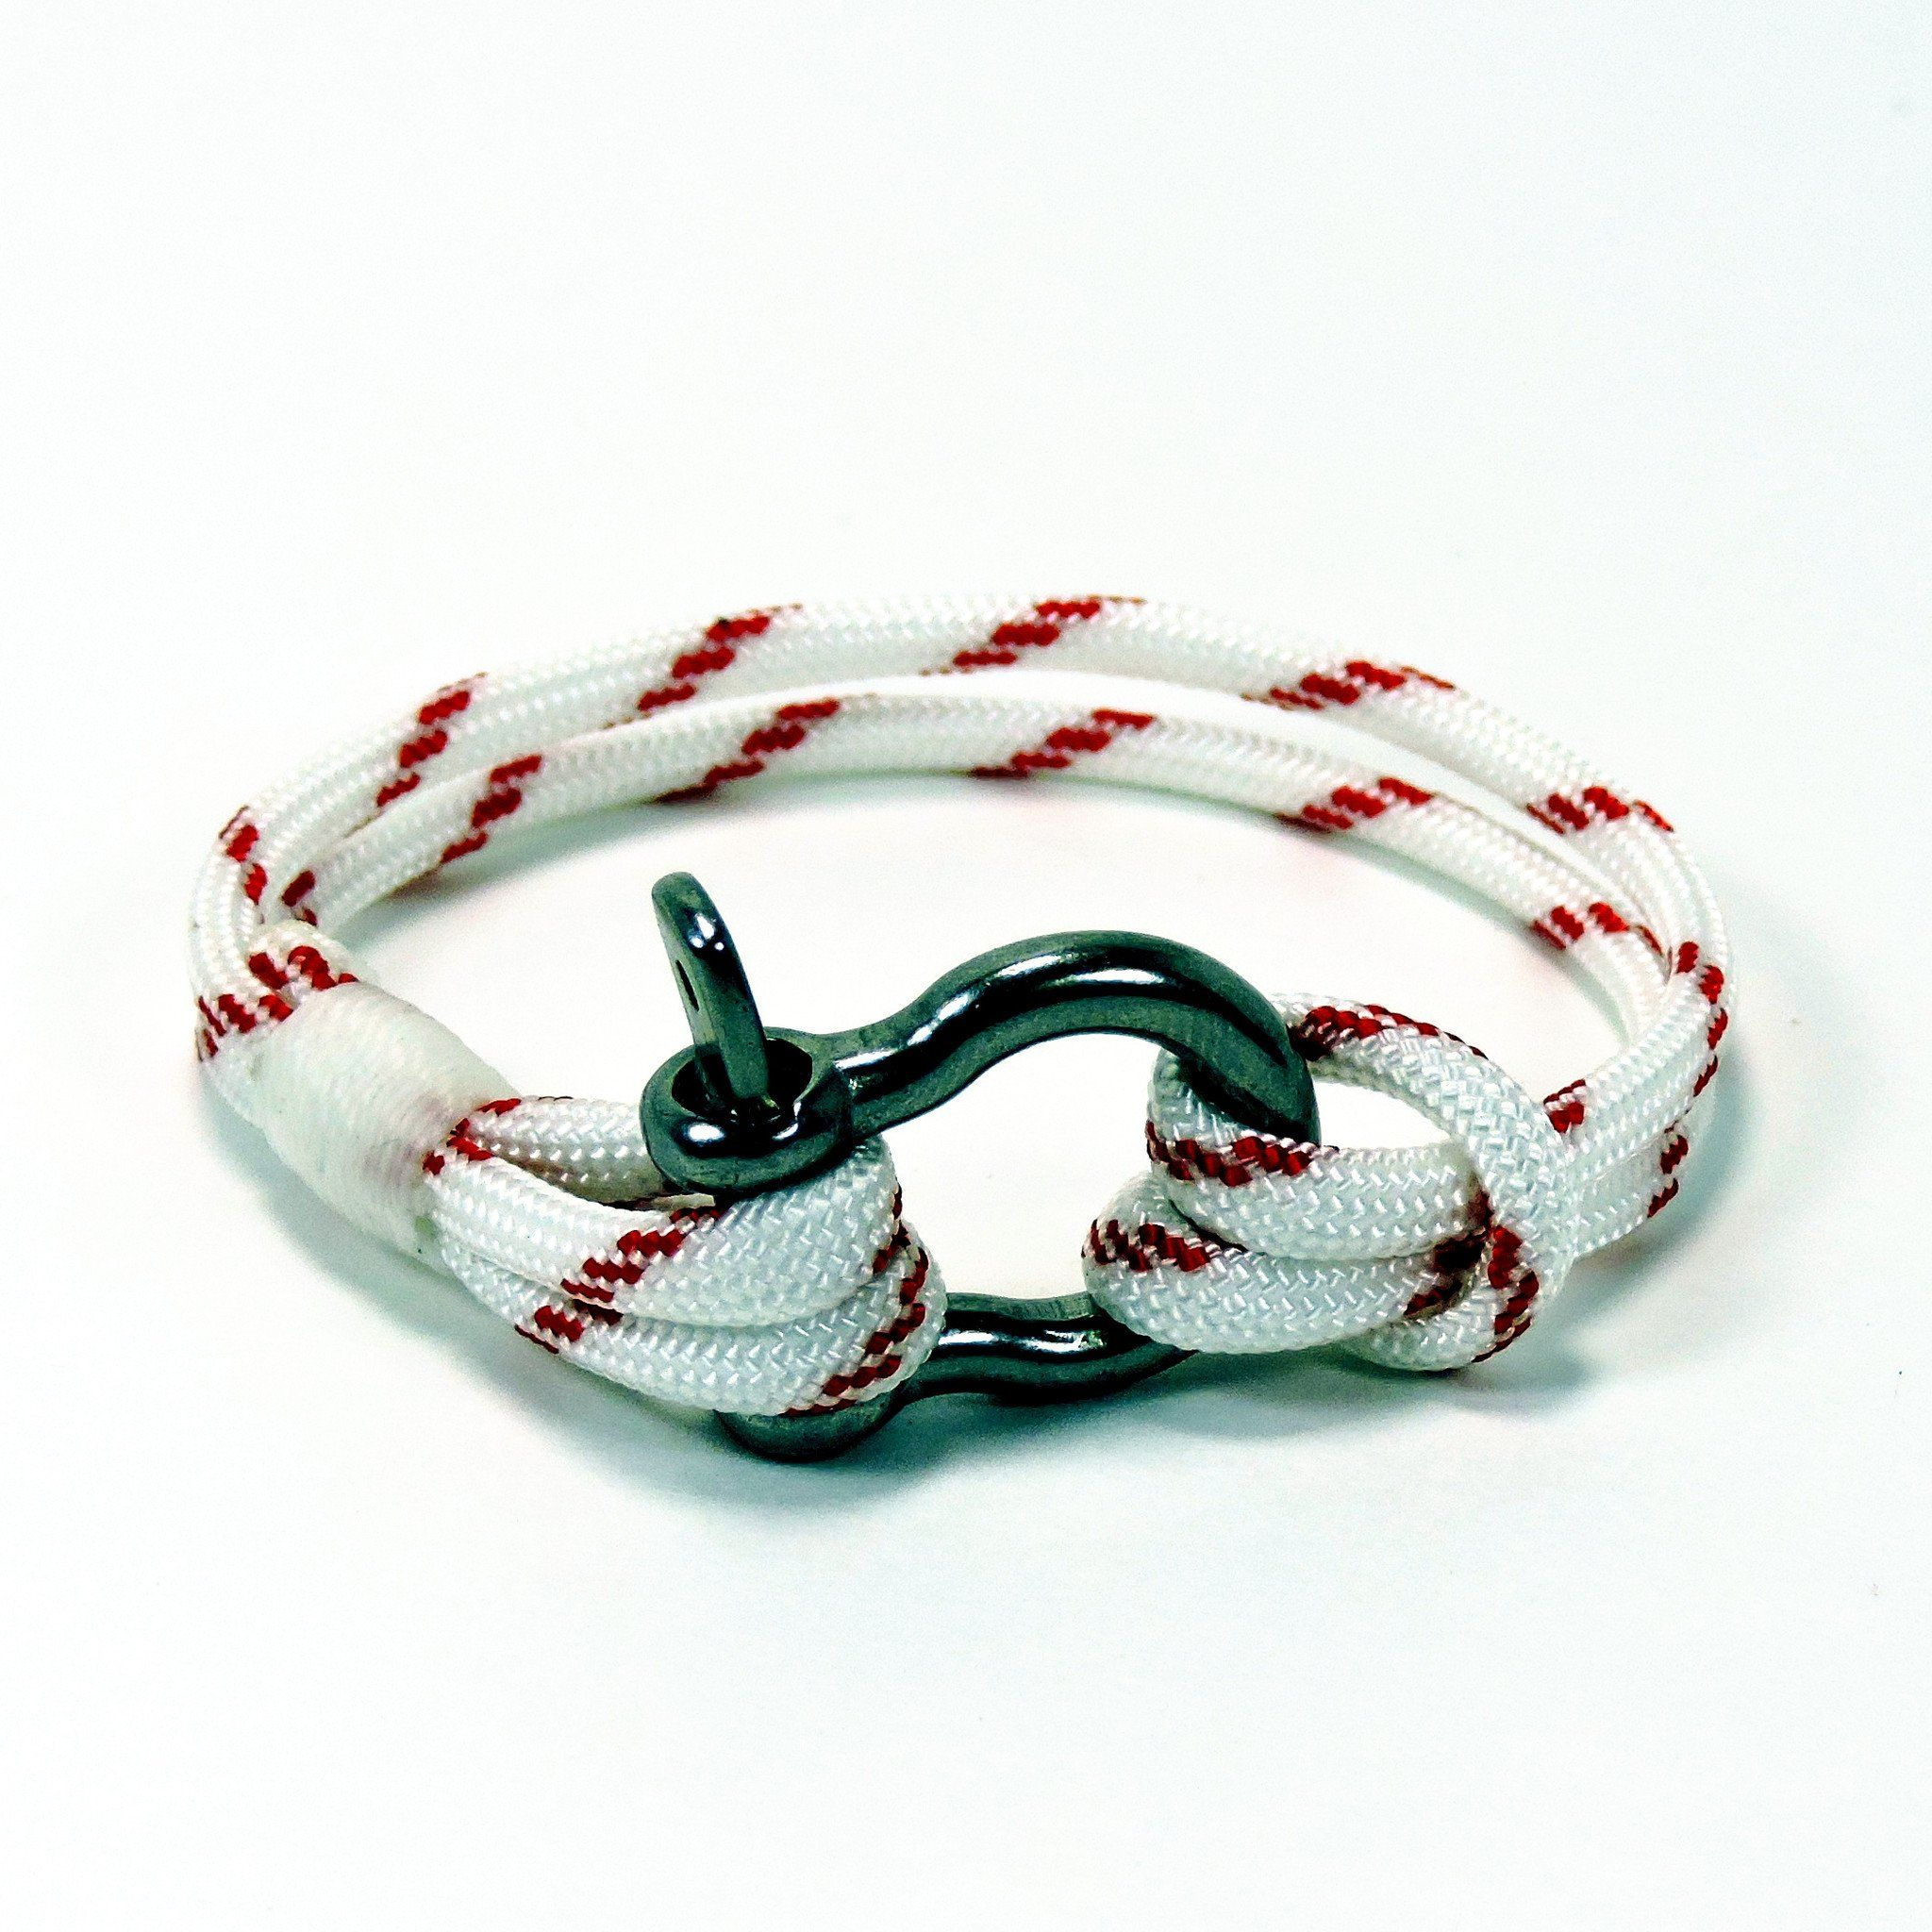 pirate s pin by rope barbados etsy on oldskipper nautical bracelet